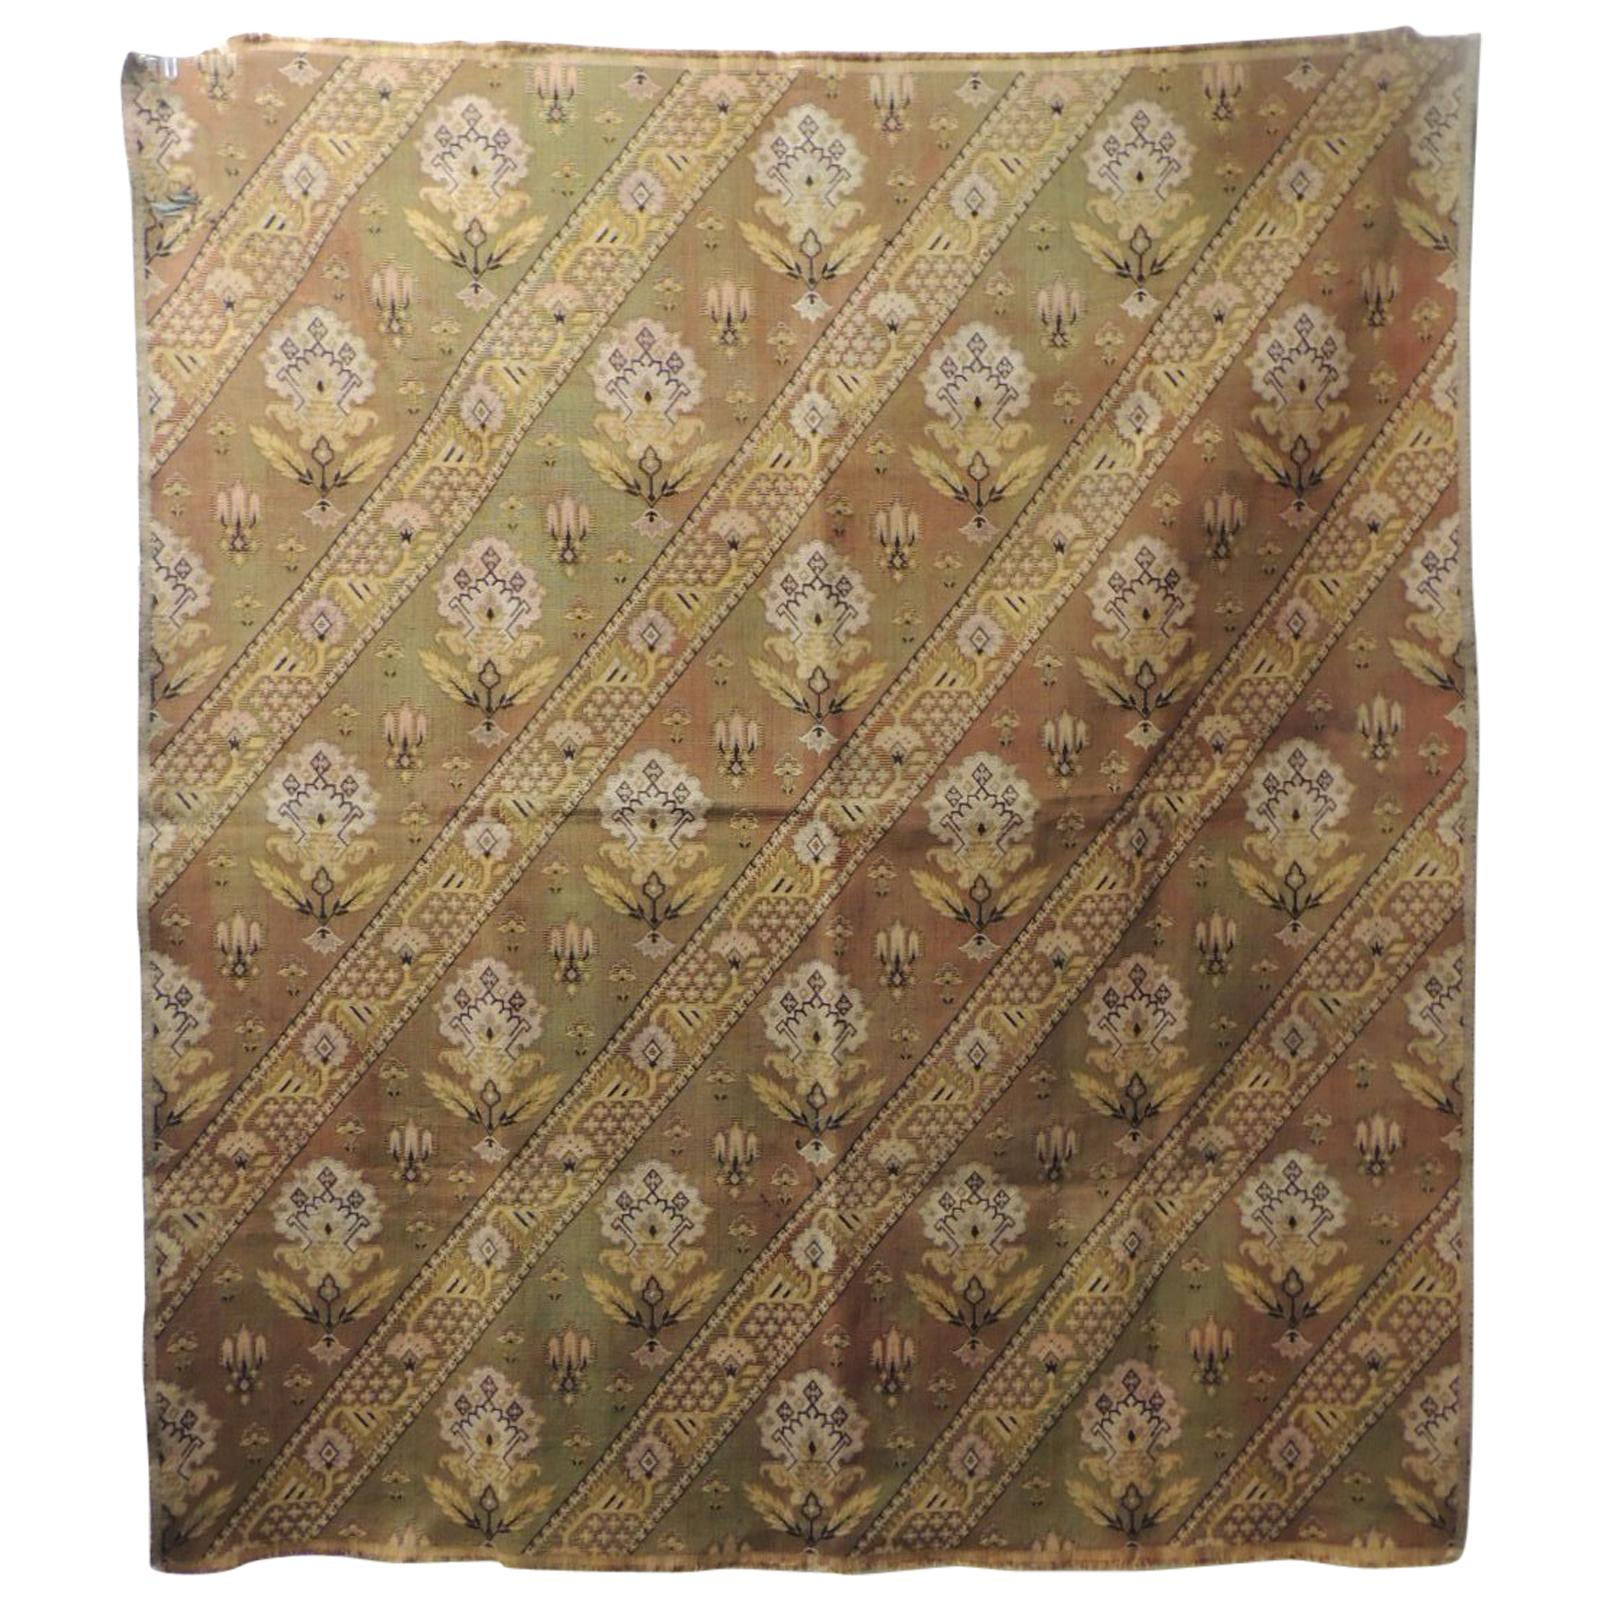 Vintage Turkish Woven Floral Tapestry Panel